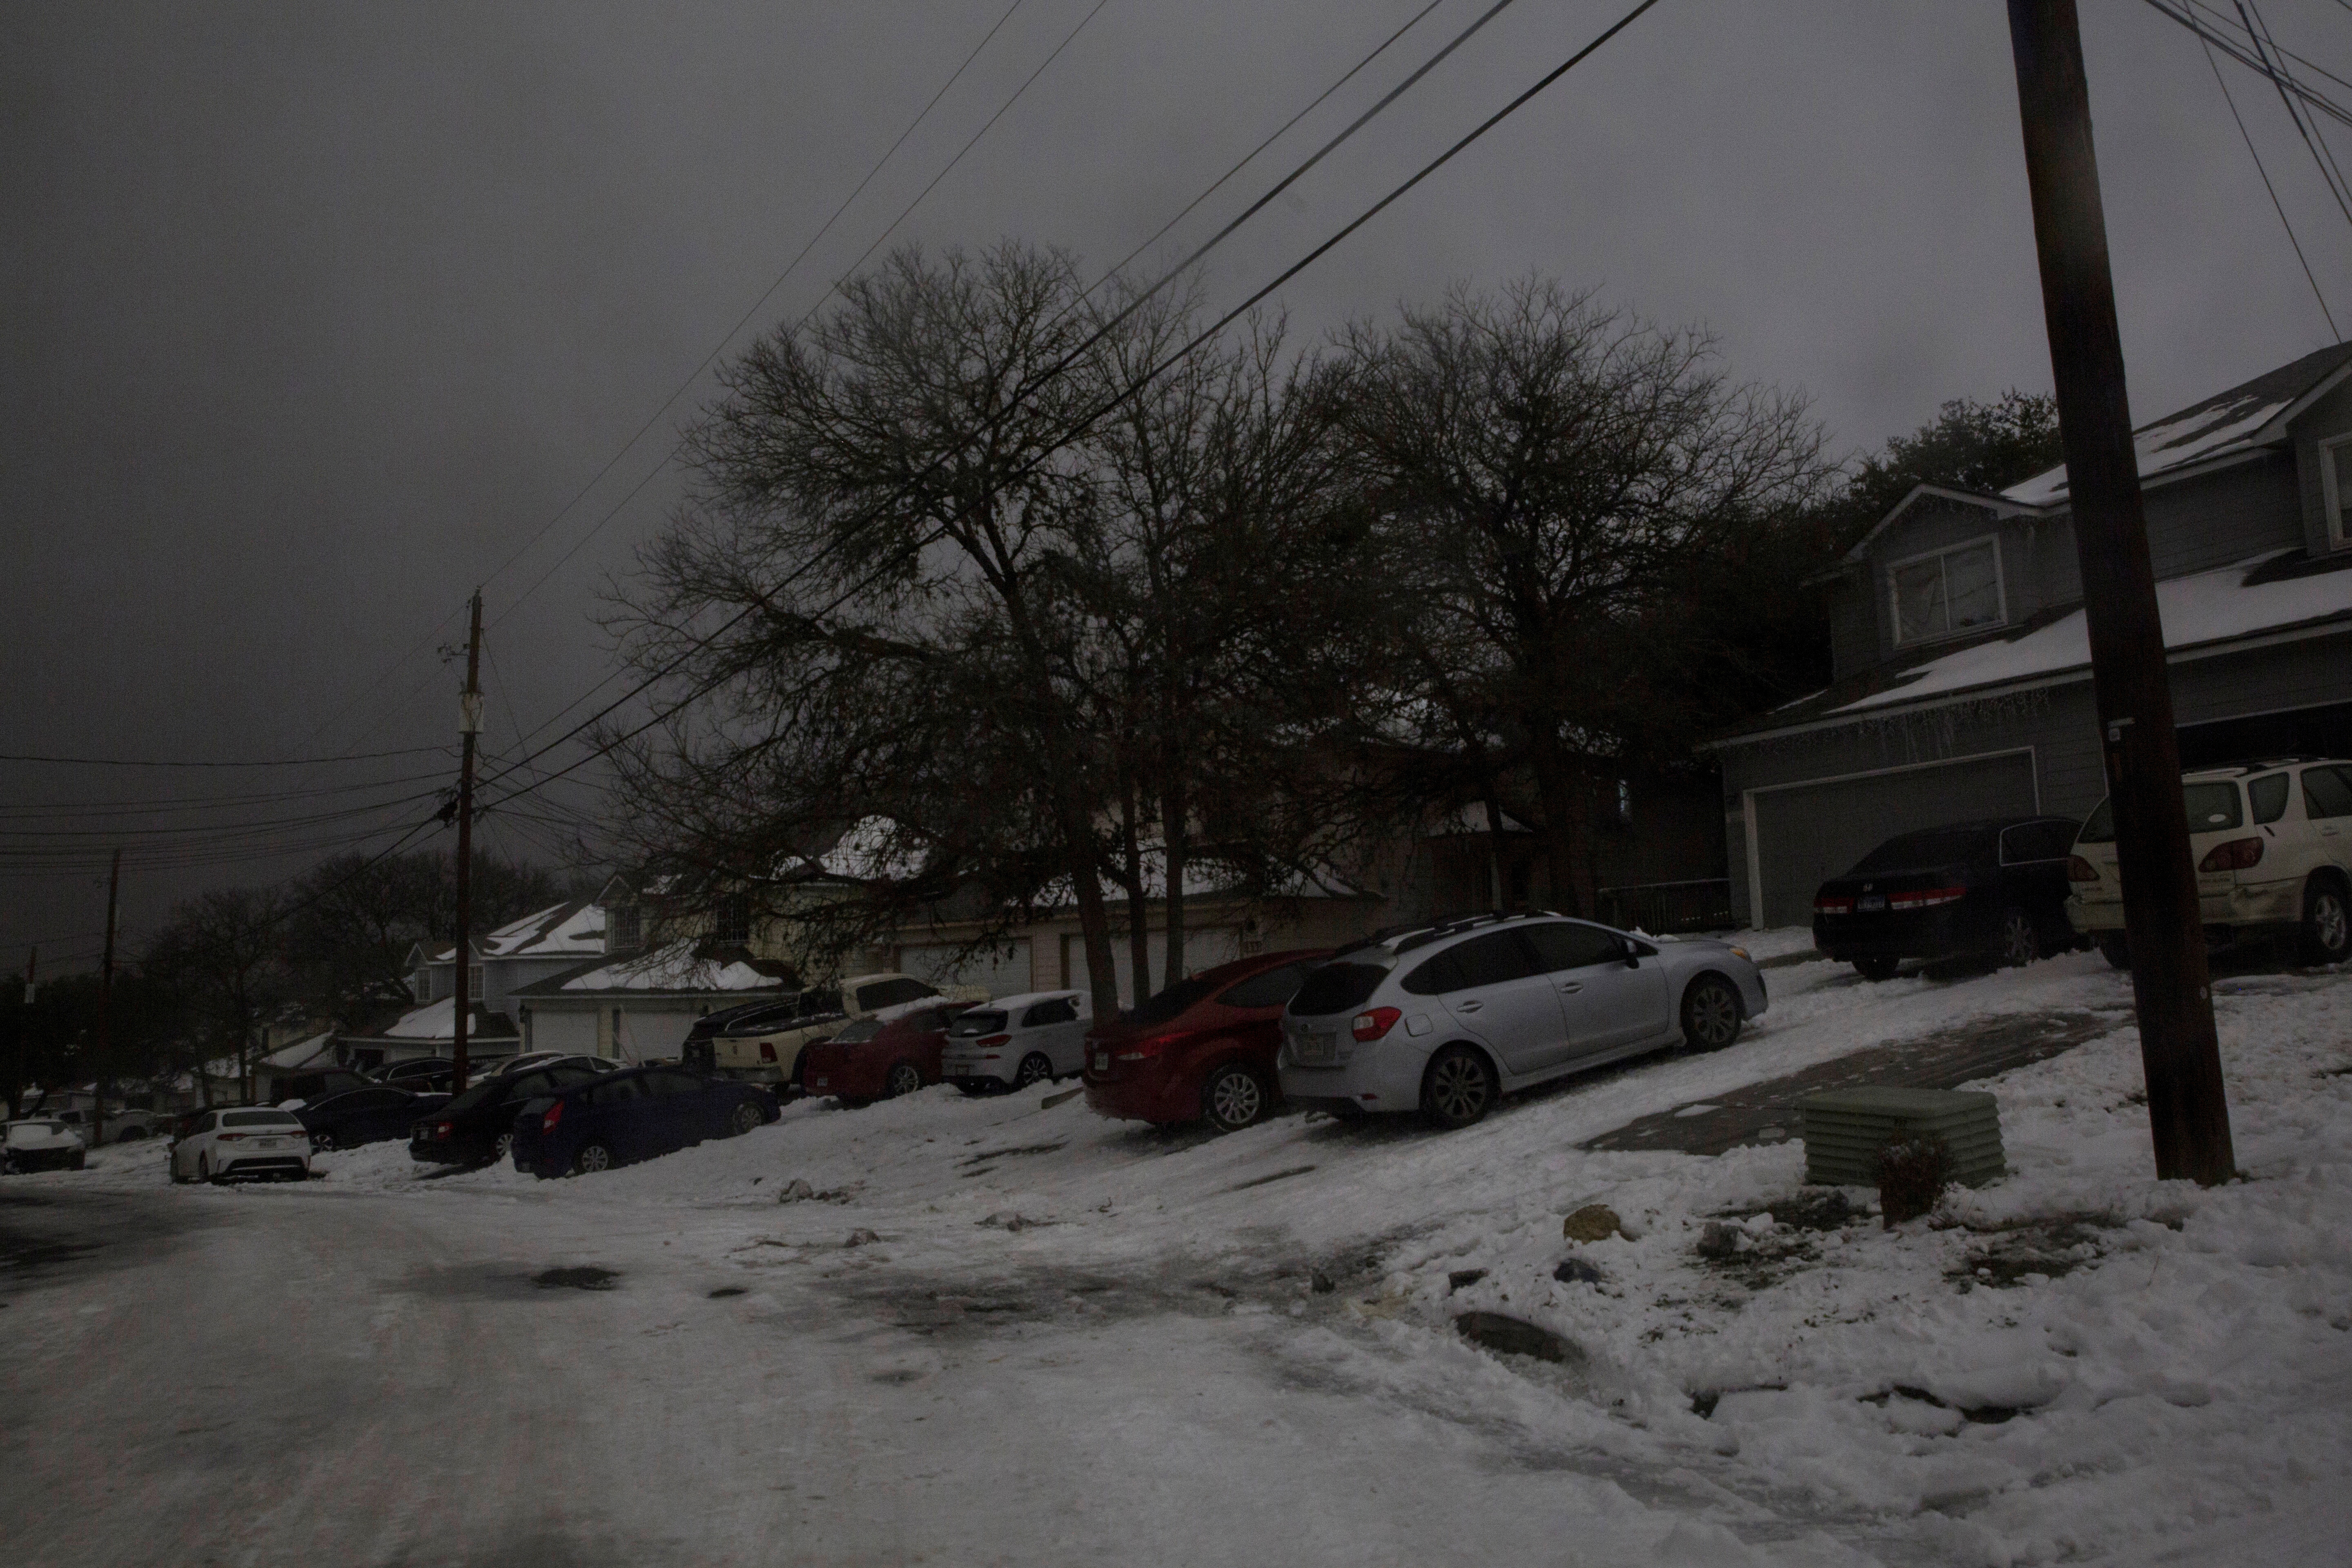 A neighborhood experiences a power outage after winter weather caused electricity blackouts in San Marcos, Texas, U.S. February 16, 2021. Picture taken February 16, 2021. REUTERS/Mikala Compton